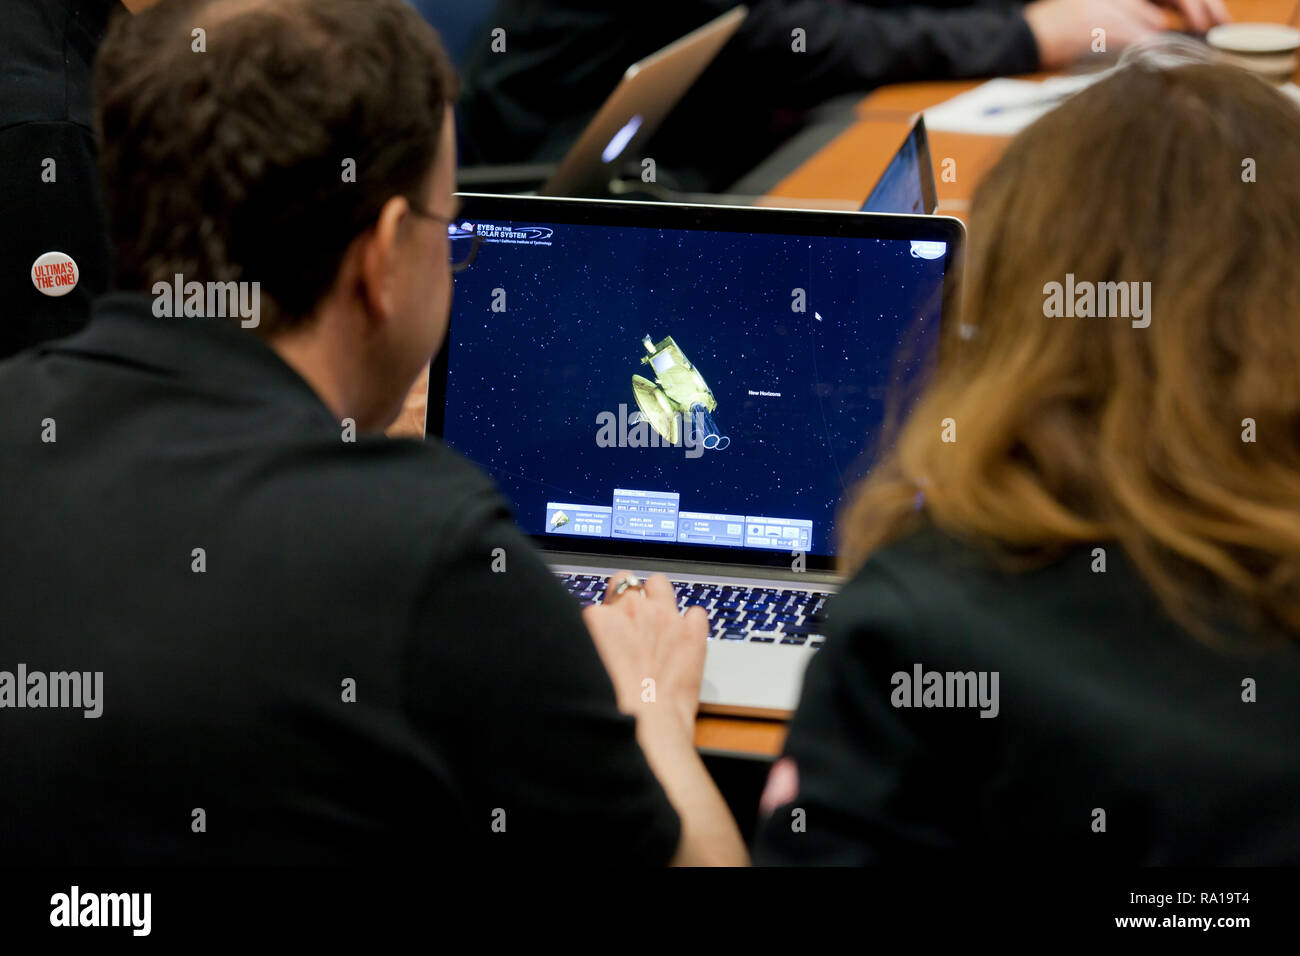 Laurel, Maryland USA, 29th December, 2018: The Johns Hopkins University Applied Physics Laboratory (APL) Mission Operations Center and  Science Operations Center prepare for its interplanetary space probe New Horizons flyby of a Kuiper Belt object Ultima Thule.  New Horizons is scheduled to arrive at Ultima Thule on 05:33 UTC, 1st, January 2019. Credit: B Christopher/Alamy Live News - Stock Image